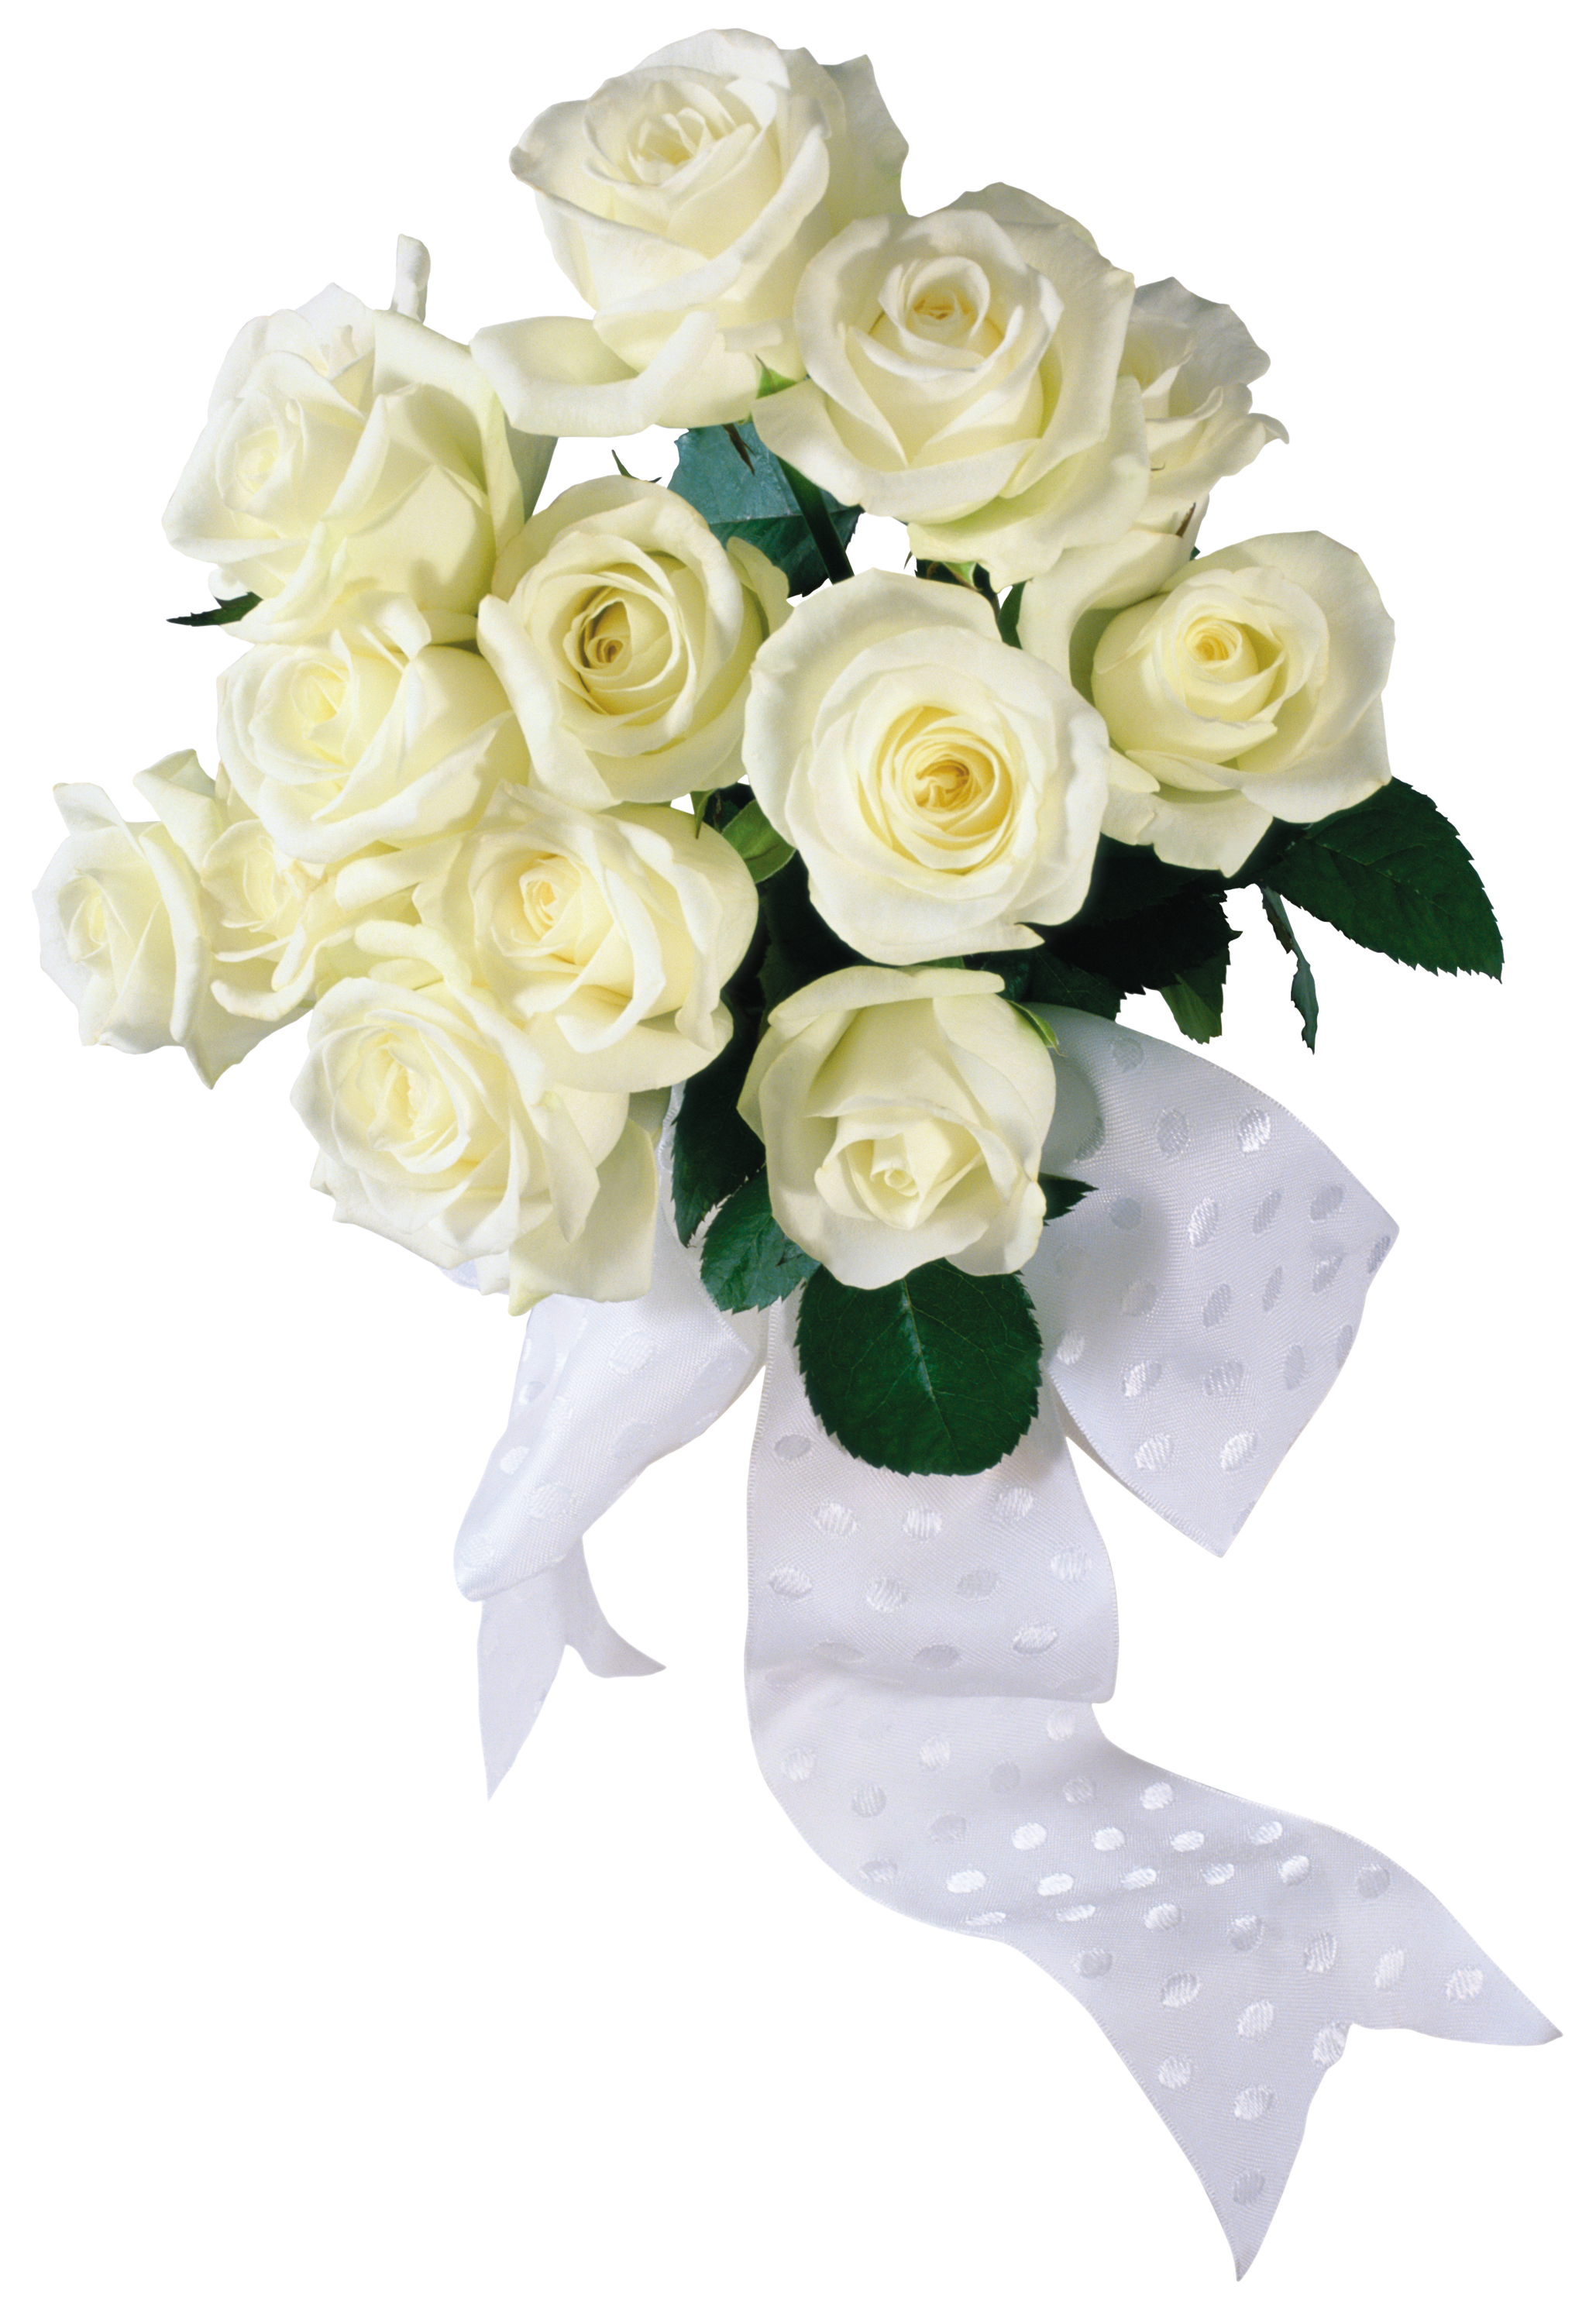 Bouquet of white roses png. Image transparent images pinterest